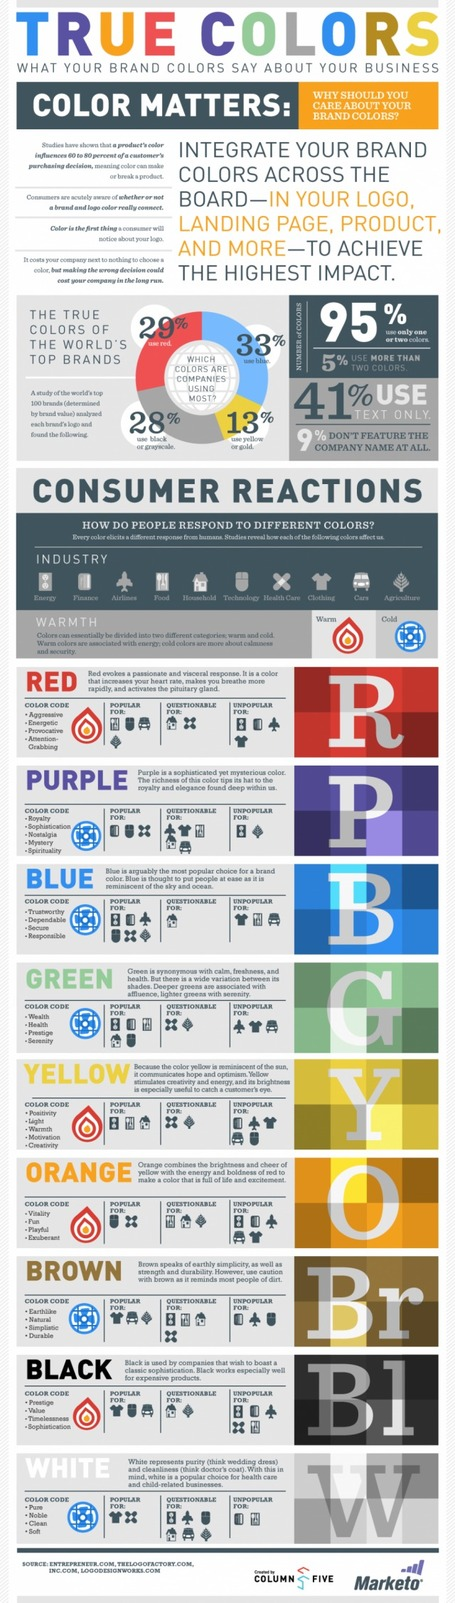 How Your Brand Colors Impact Your Audience | Inside Voiceover—Cutting-edge Insights + Enlightening, Entertaining News for Voiceover Professionals | Scoop.it